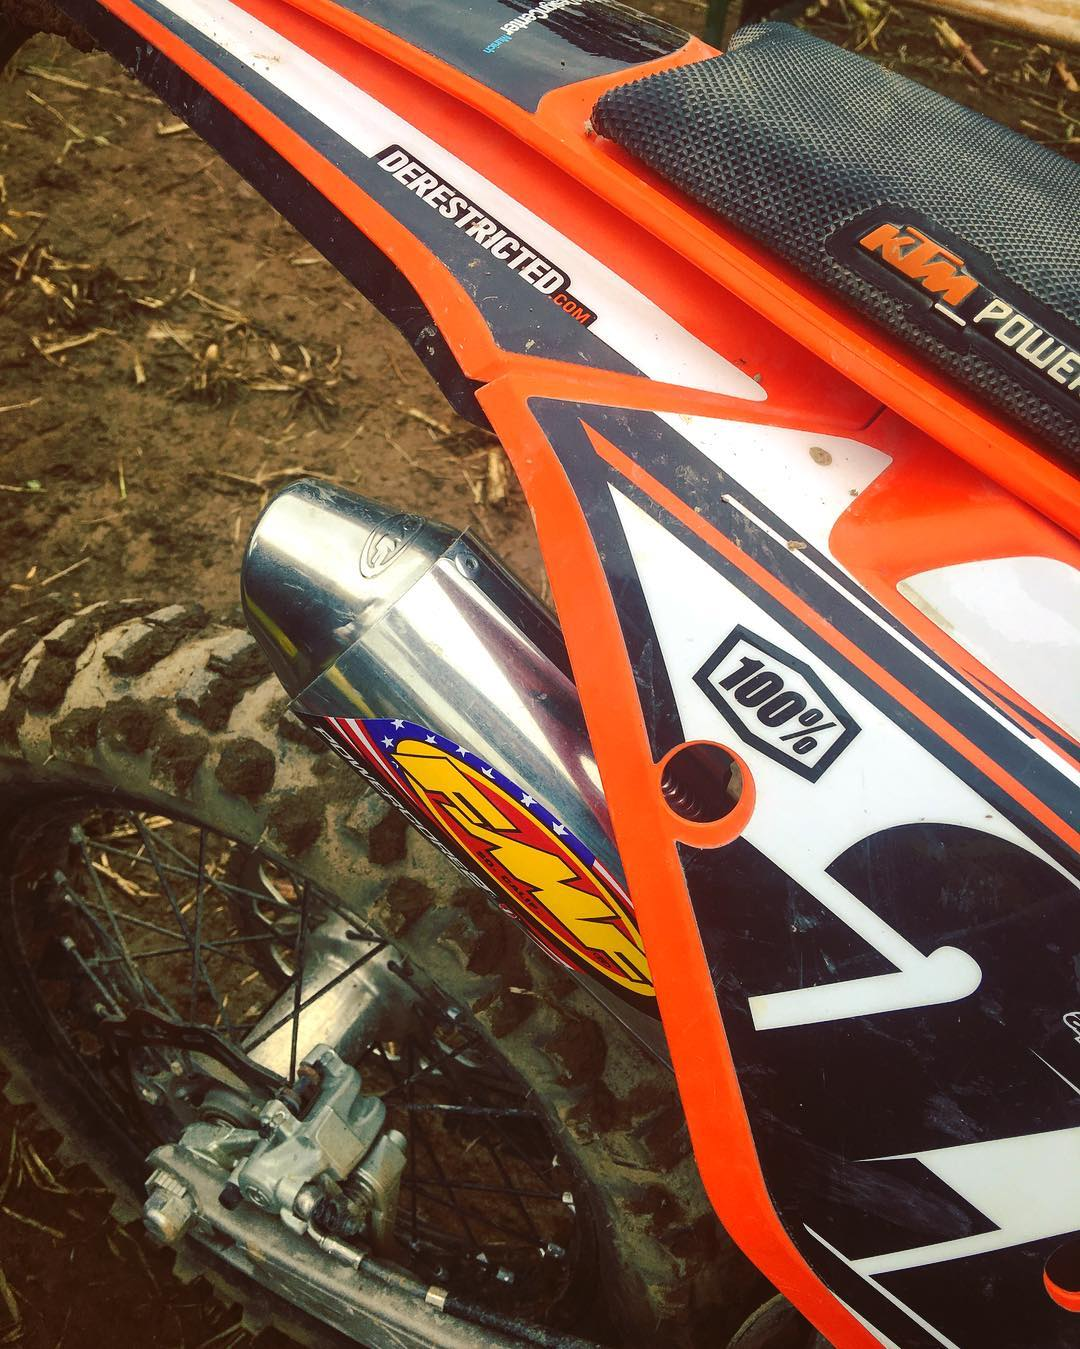 Audio delights @fmf73 #powercore2 #enduro #ktmexc #2stroke #ride100percent #enduro